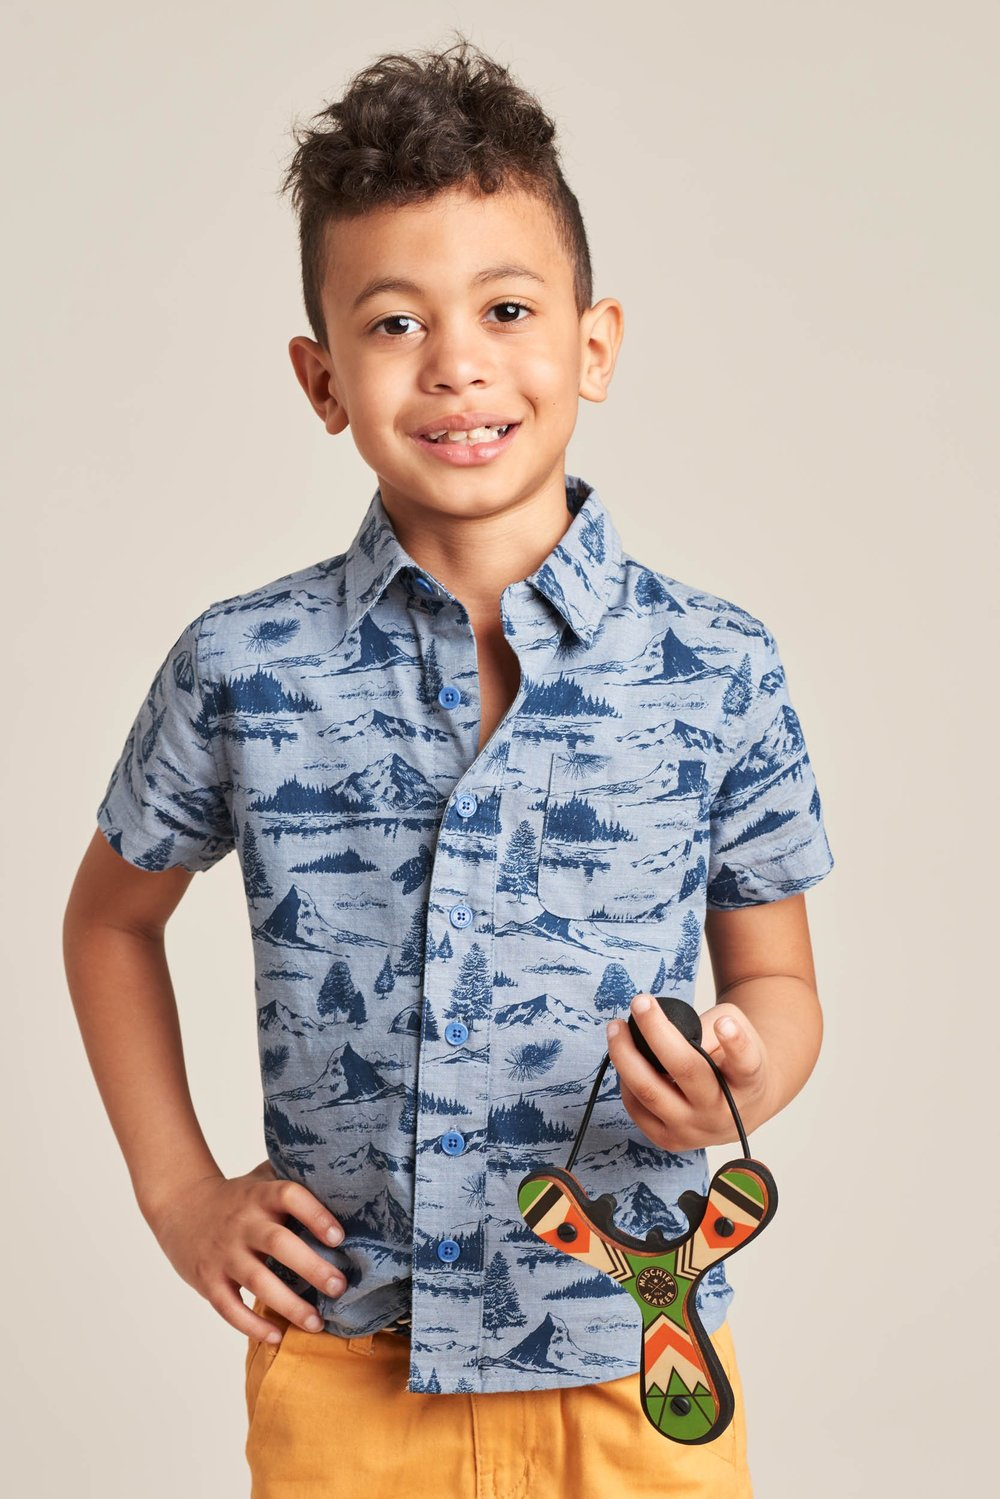 Ethical Clothing Brands for Kids